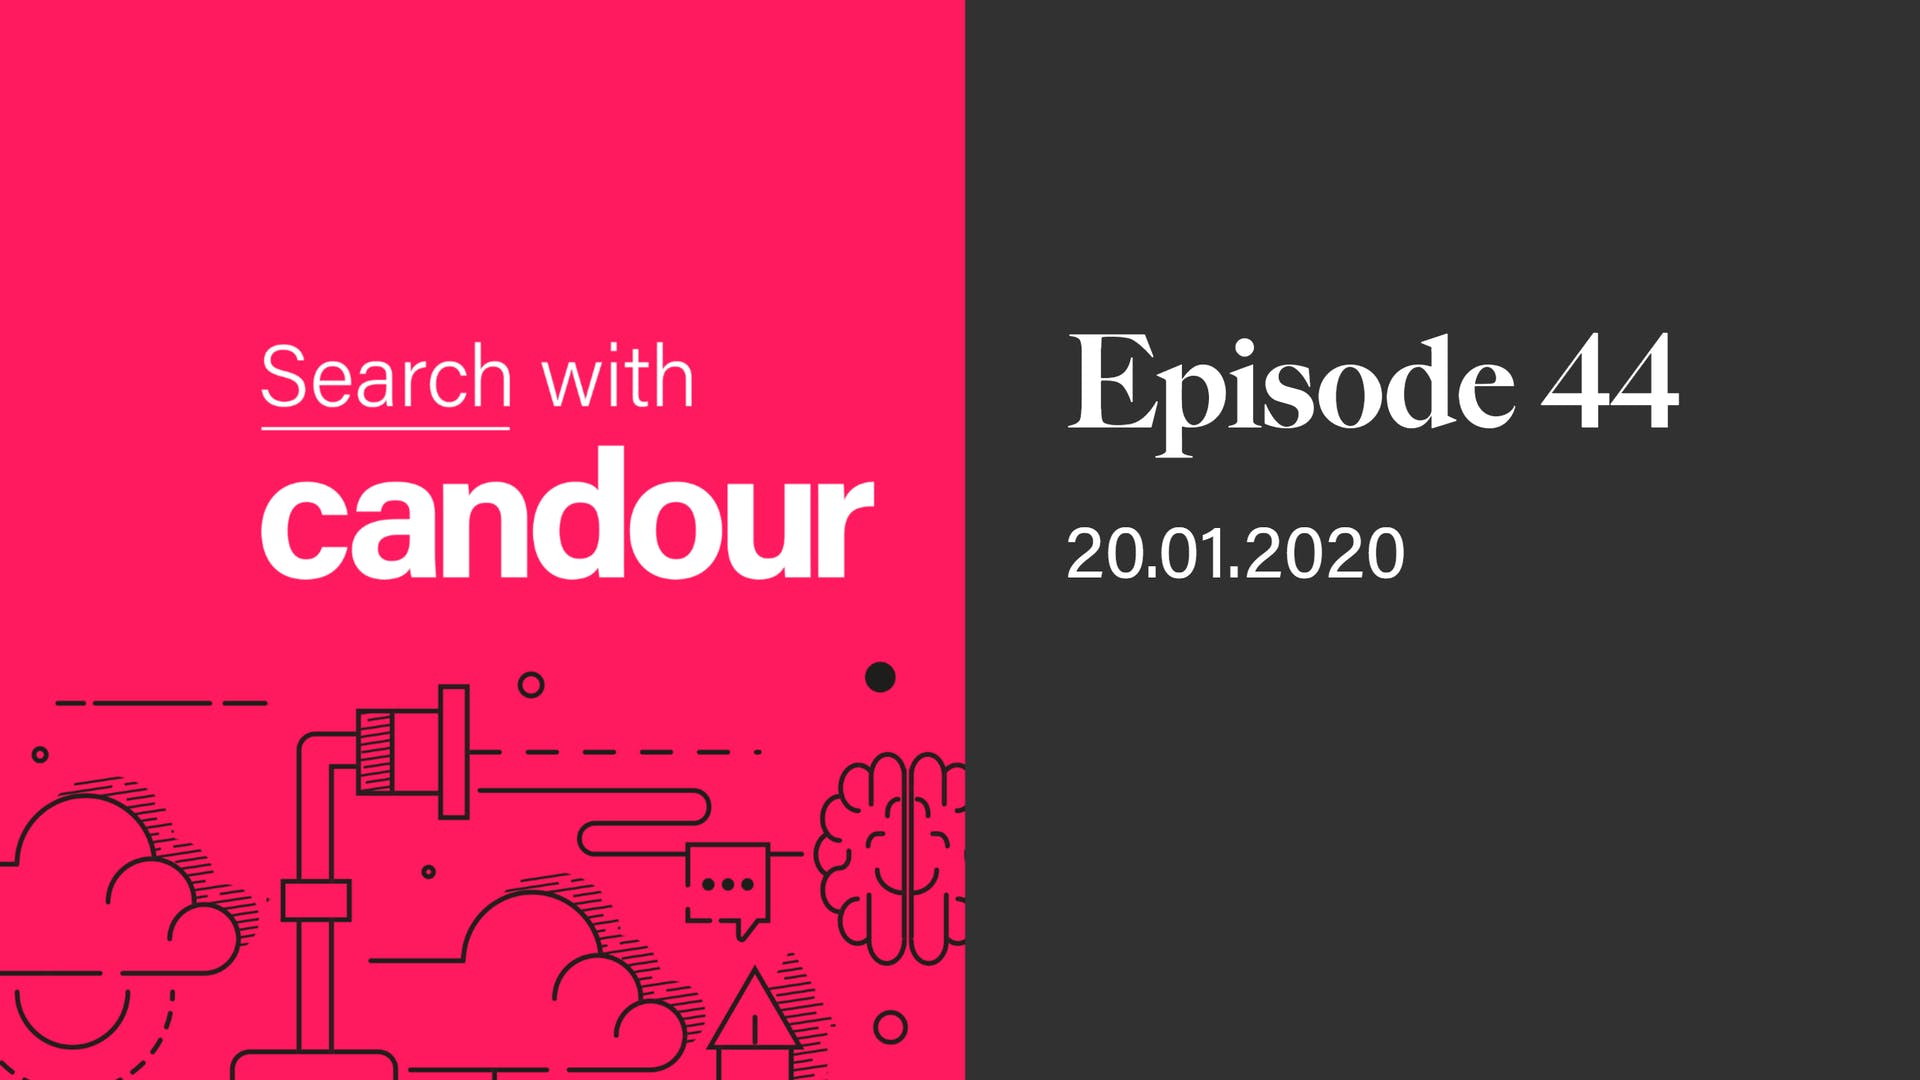 Episode 44 - Search with Candour